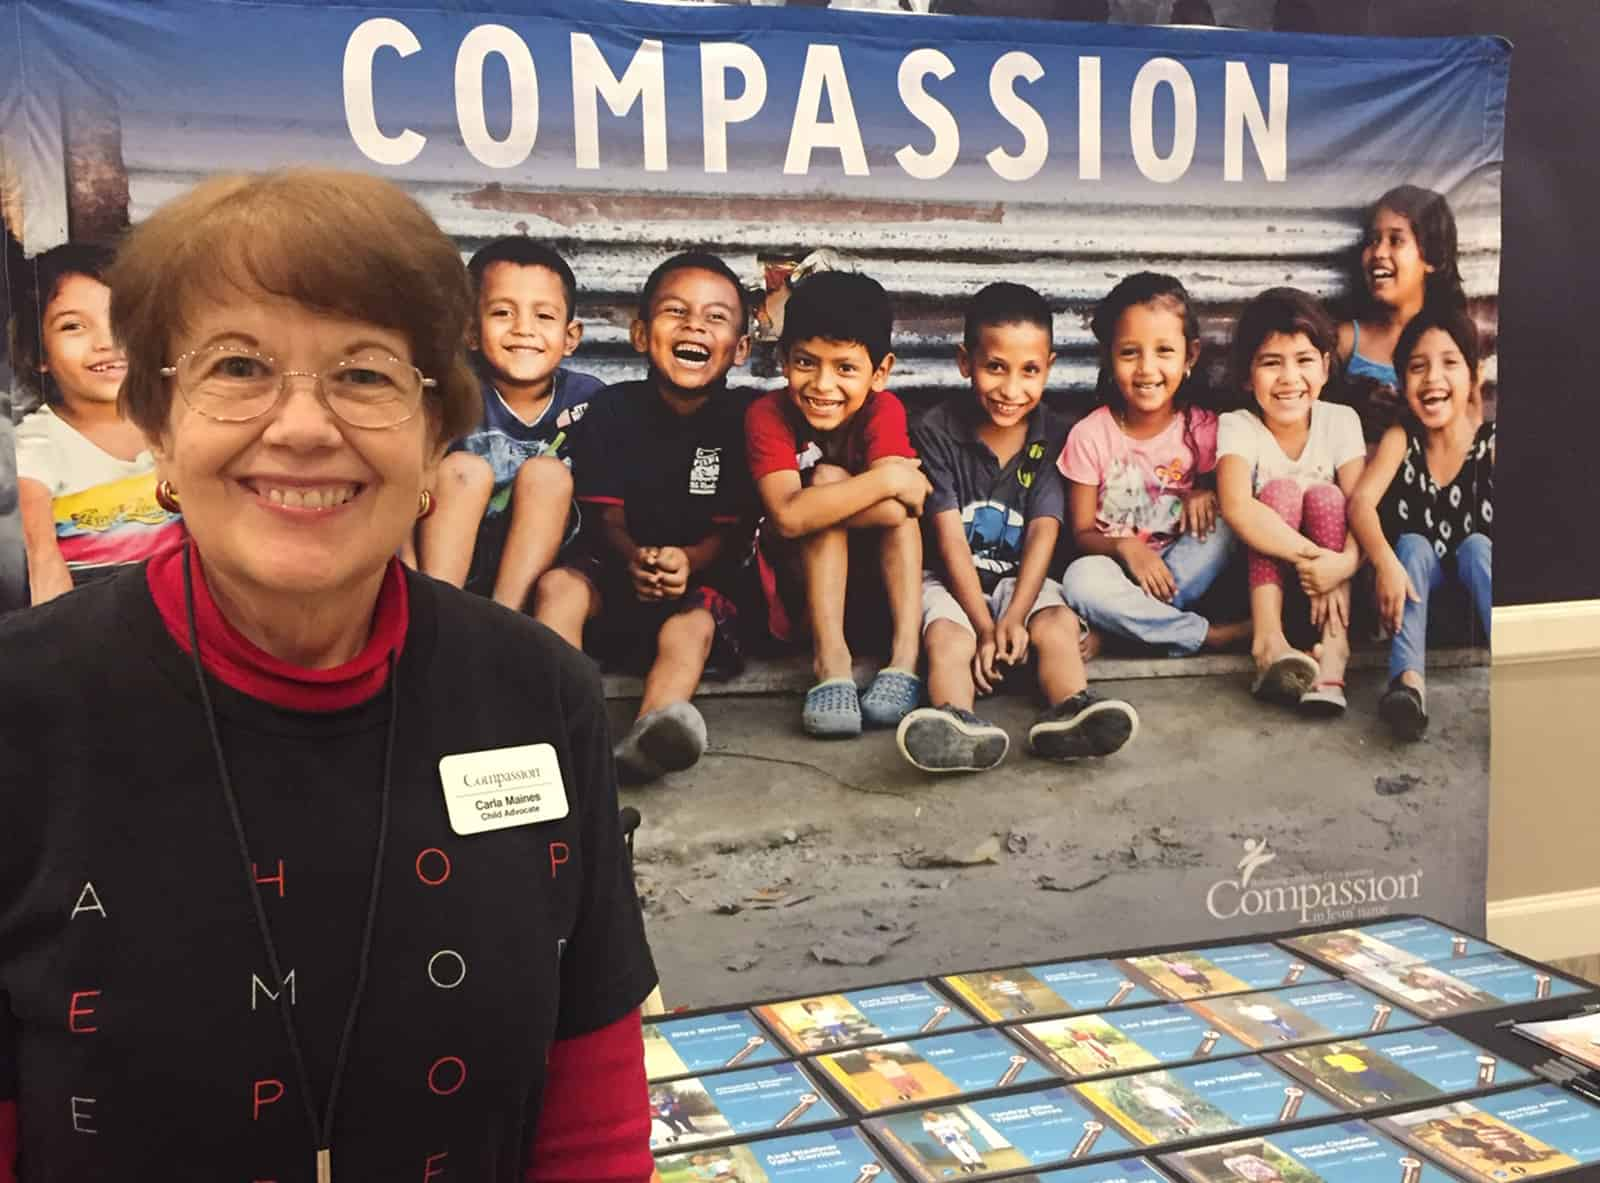 Carla Maines at a Compassion event table